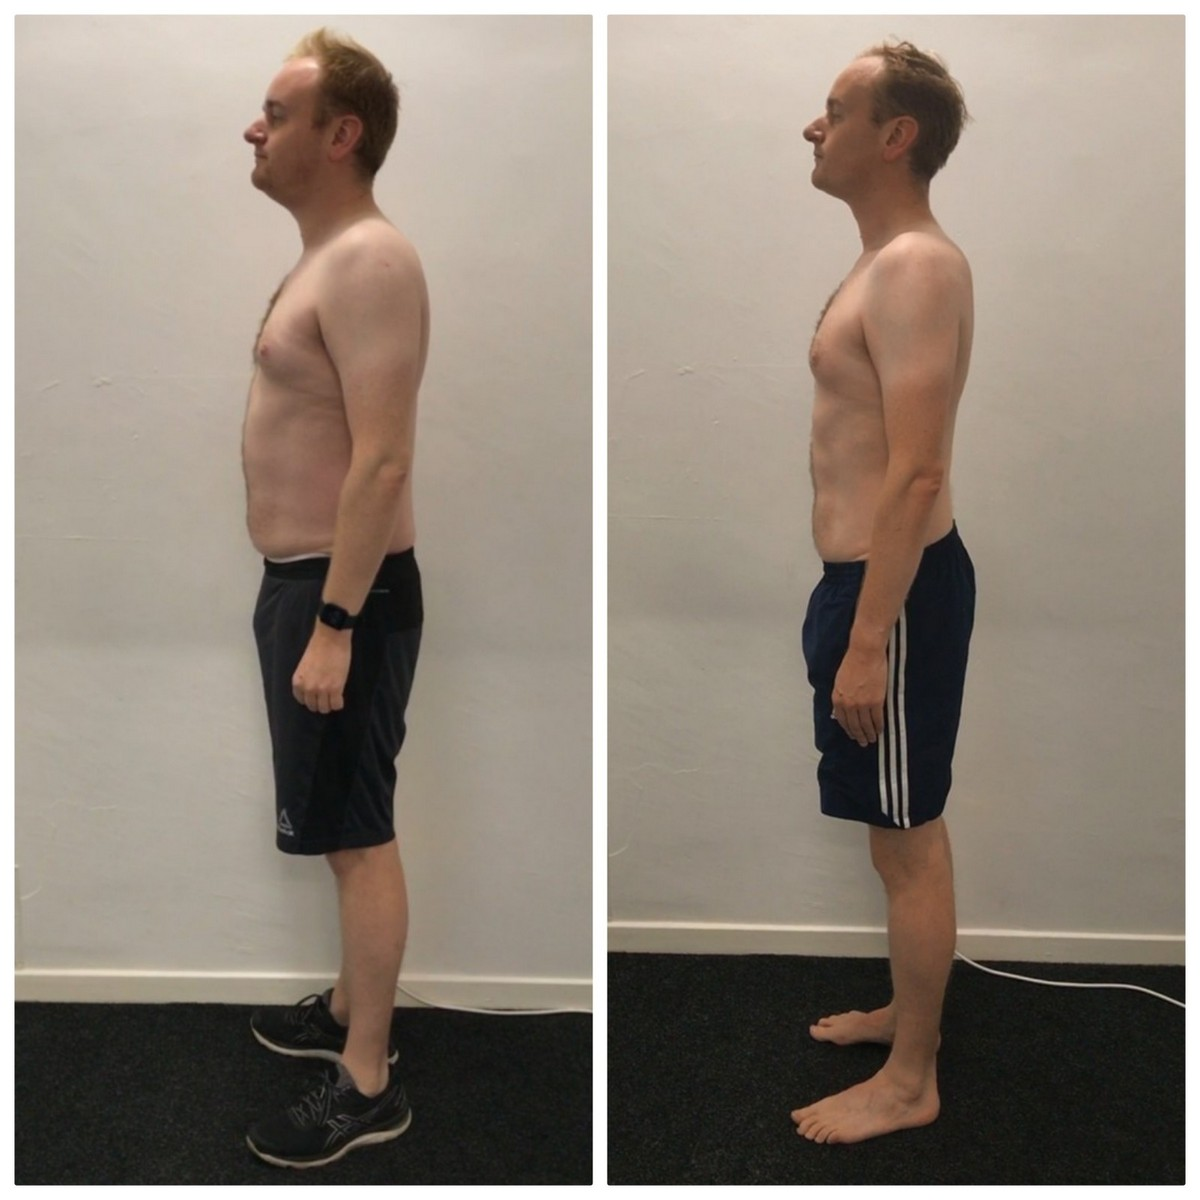 Adam Brown before and after comparison.